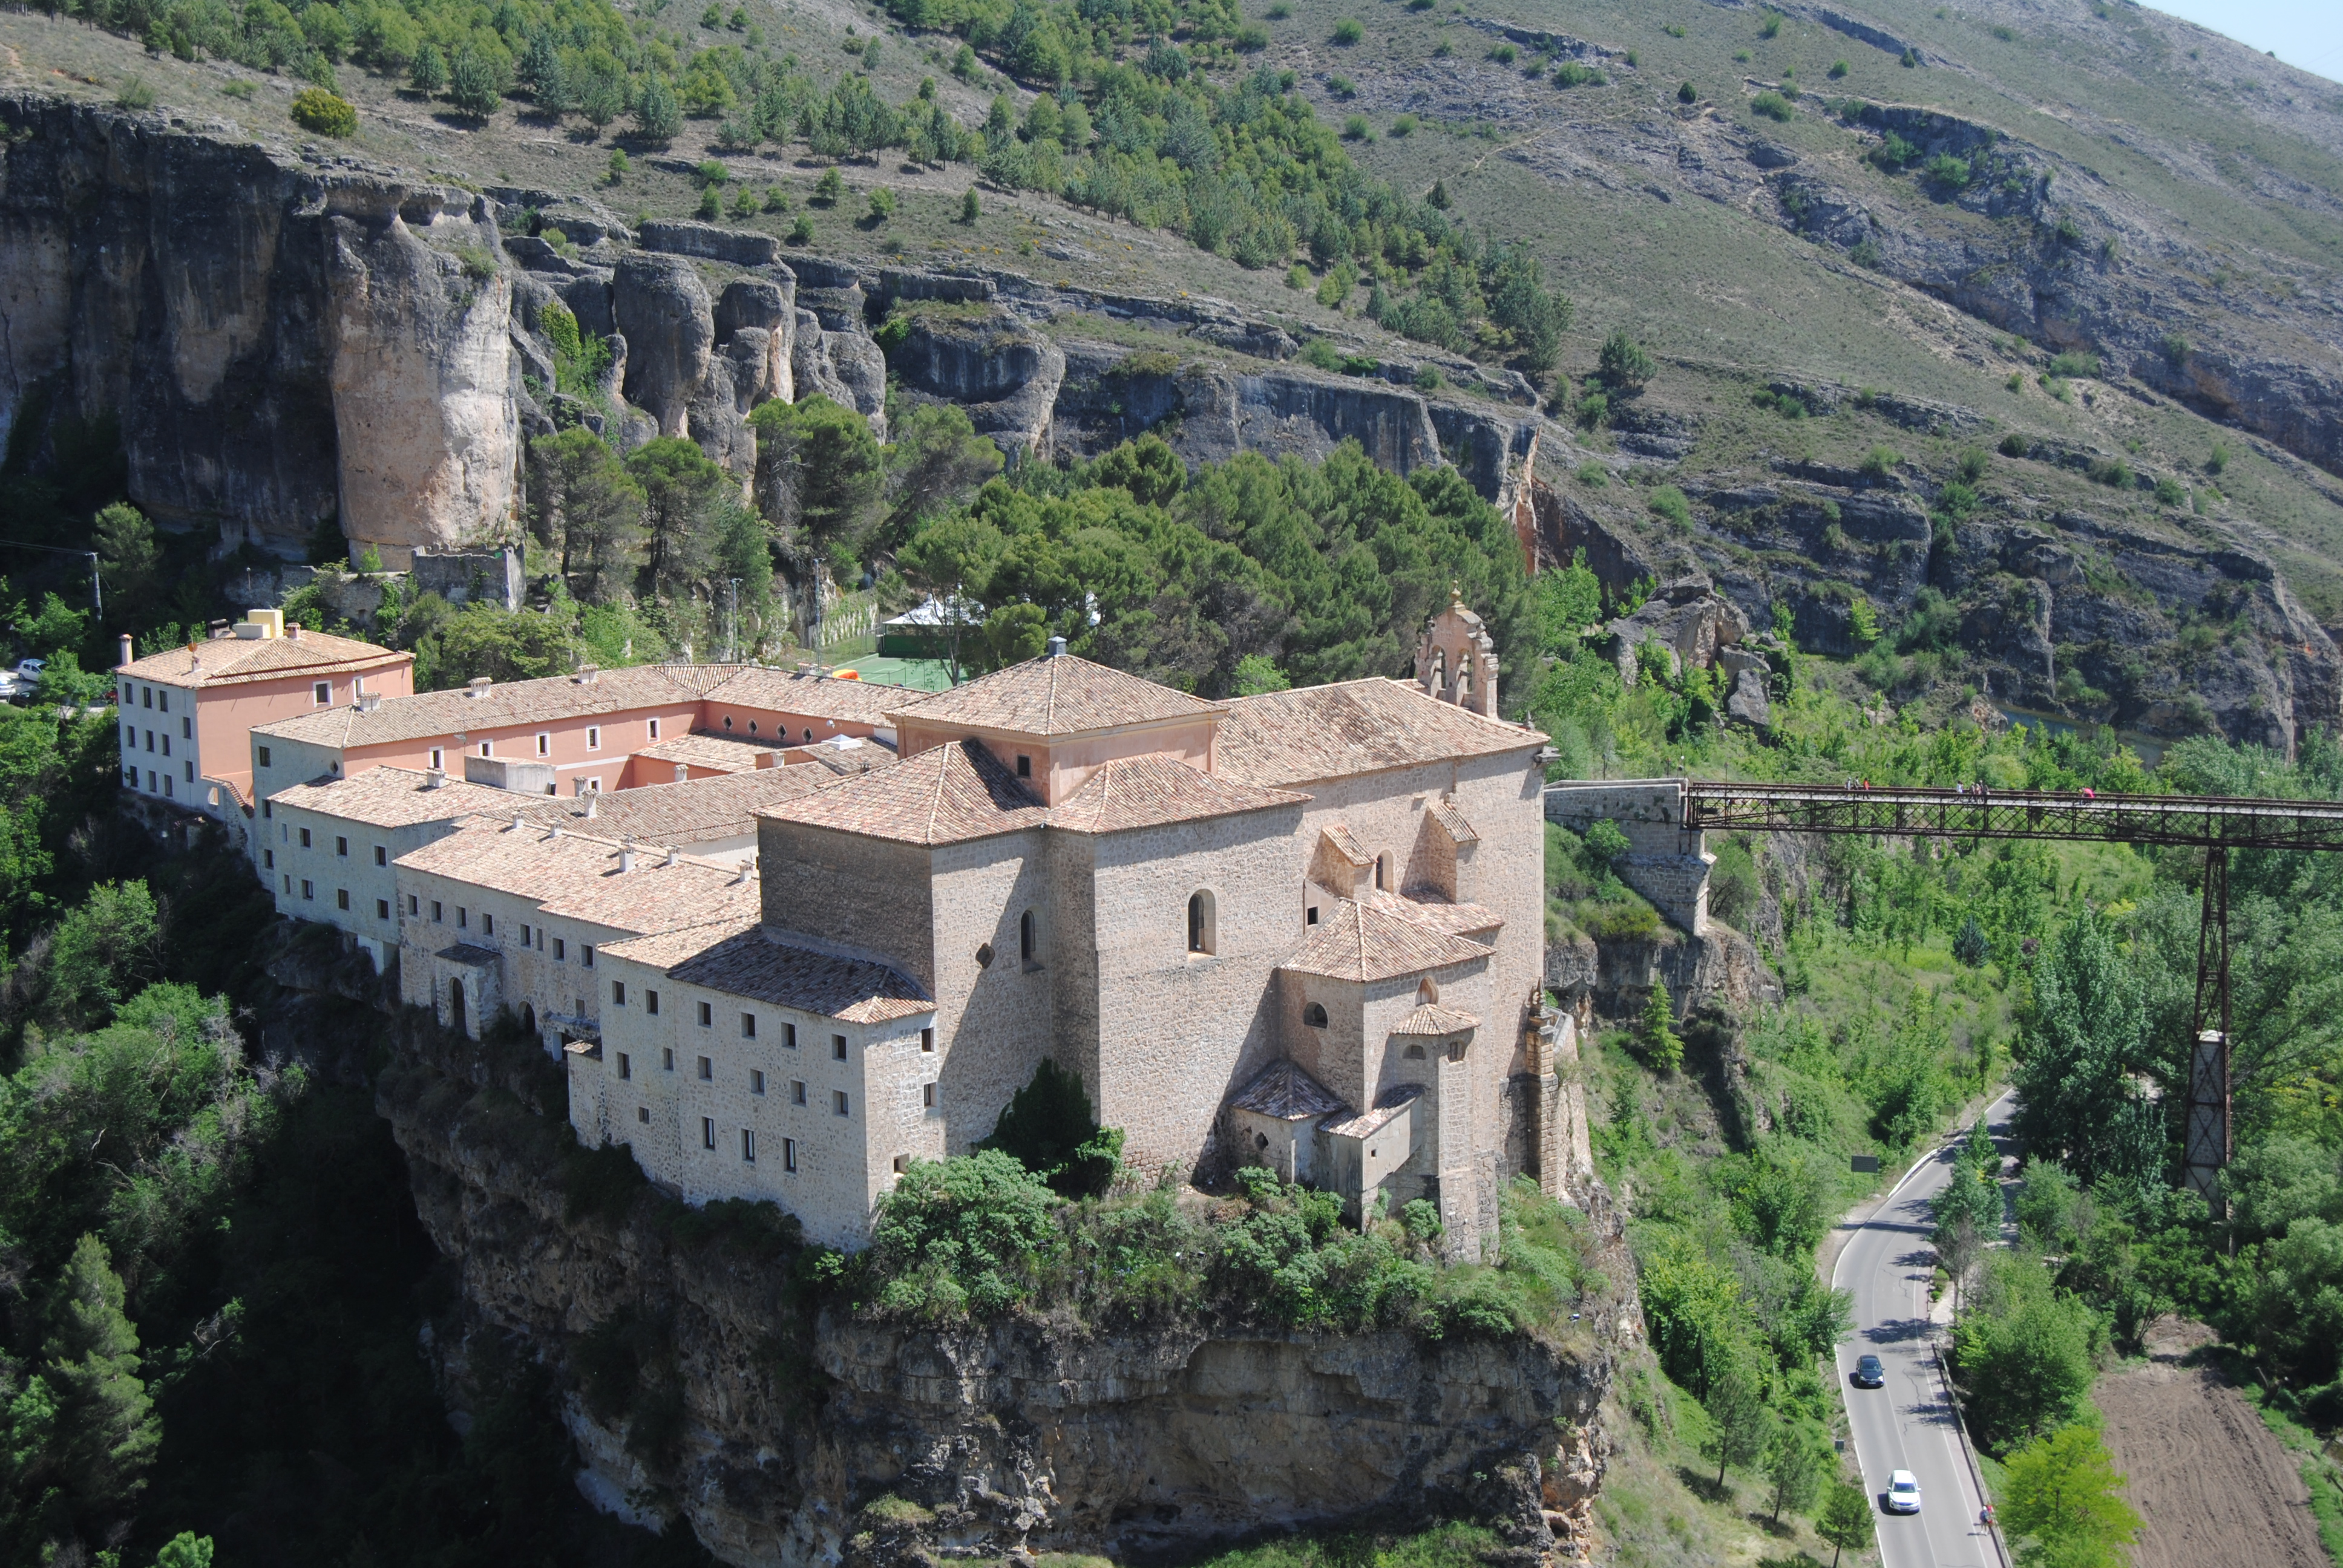 File:Convento SP Cuenca.JPG - Wikimedia Commons